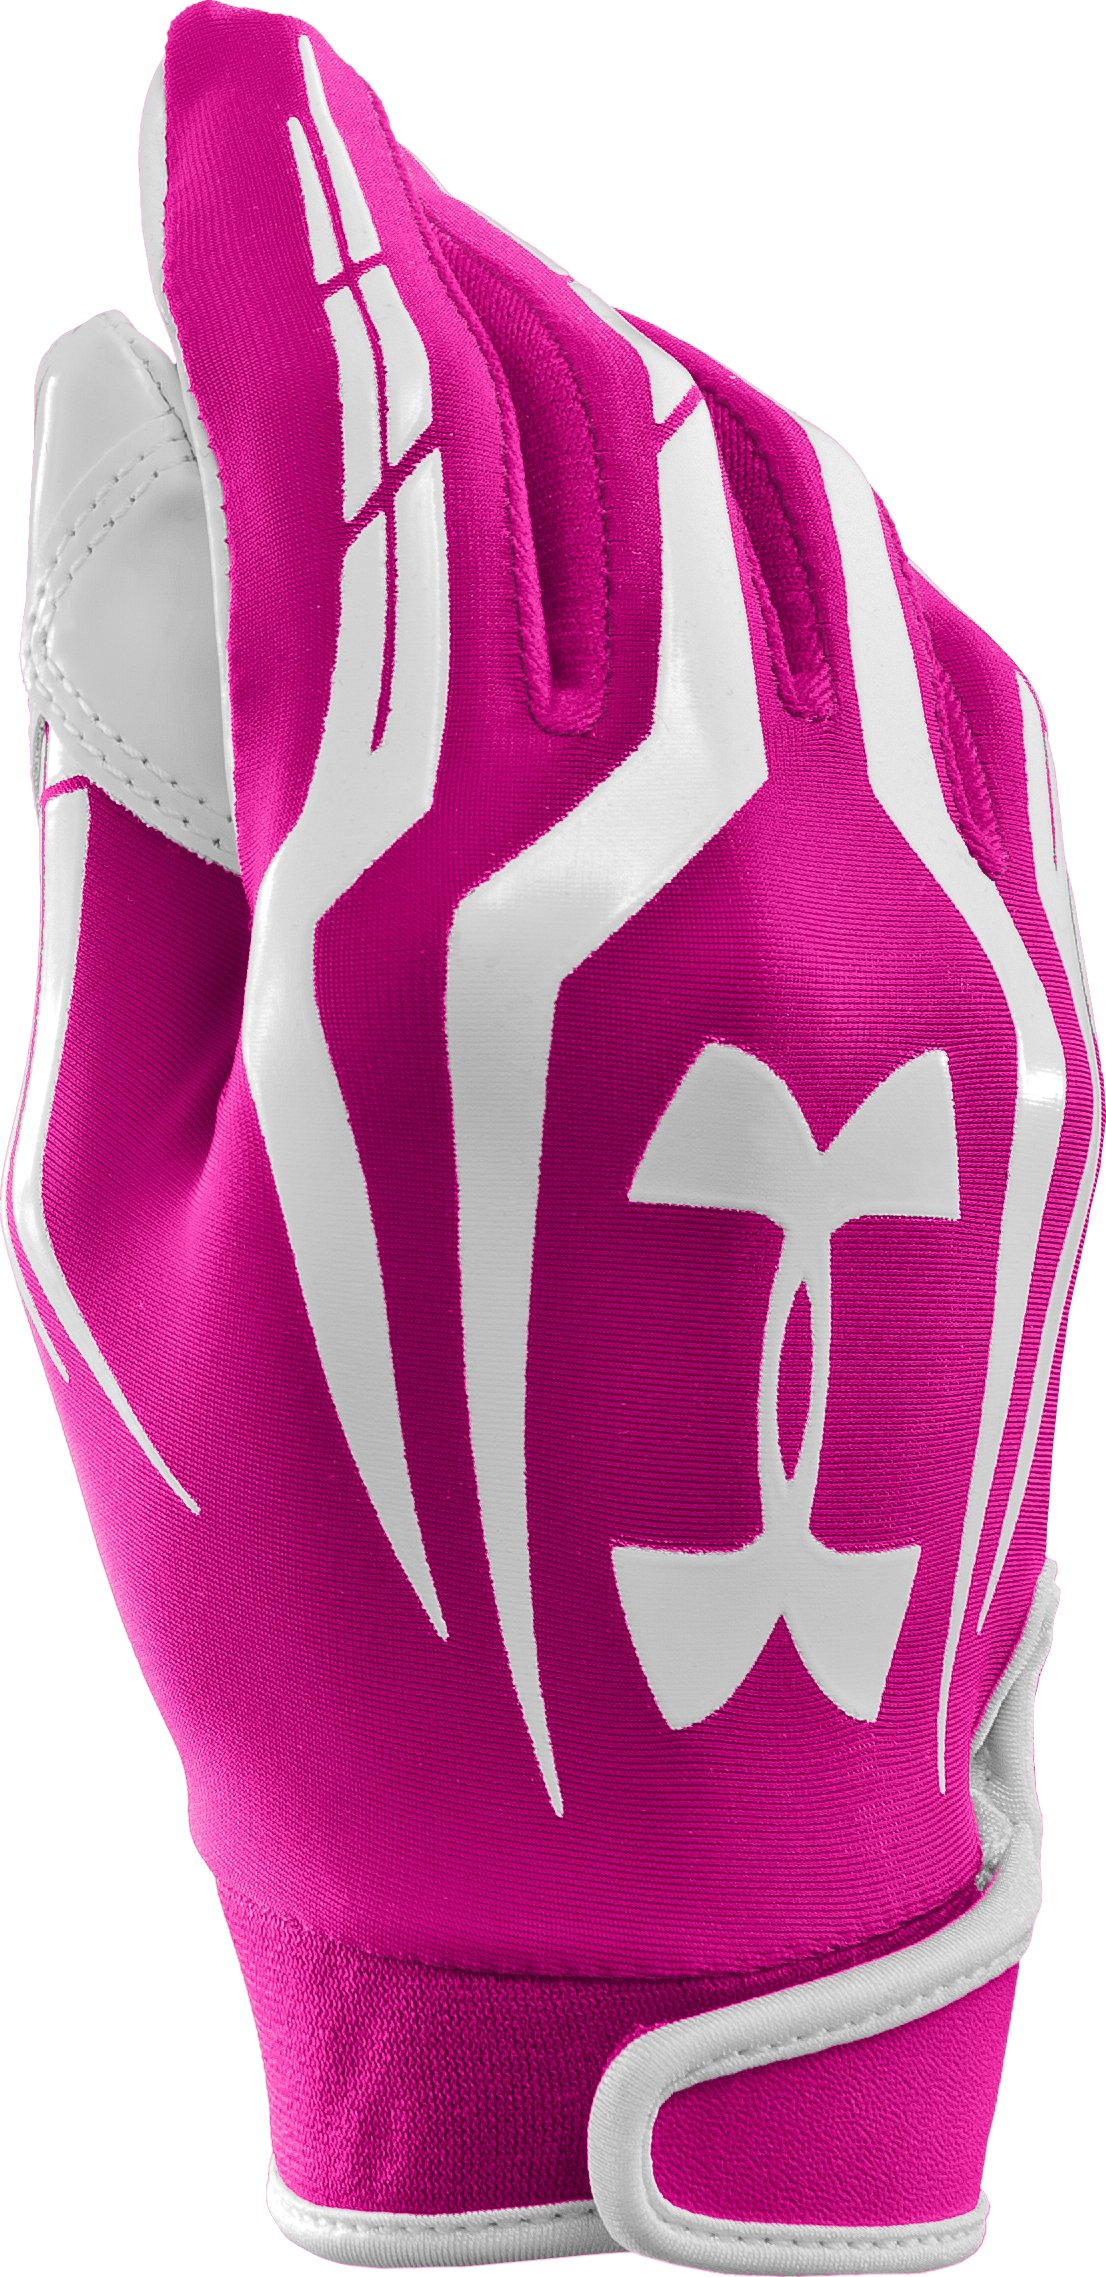 Men's UA F3 Full Finger Football Gloves, Tropic Pink, zoomed image